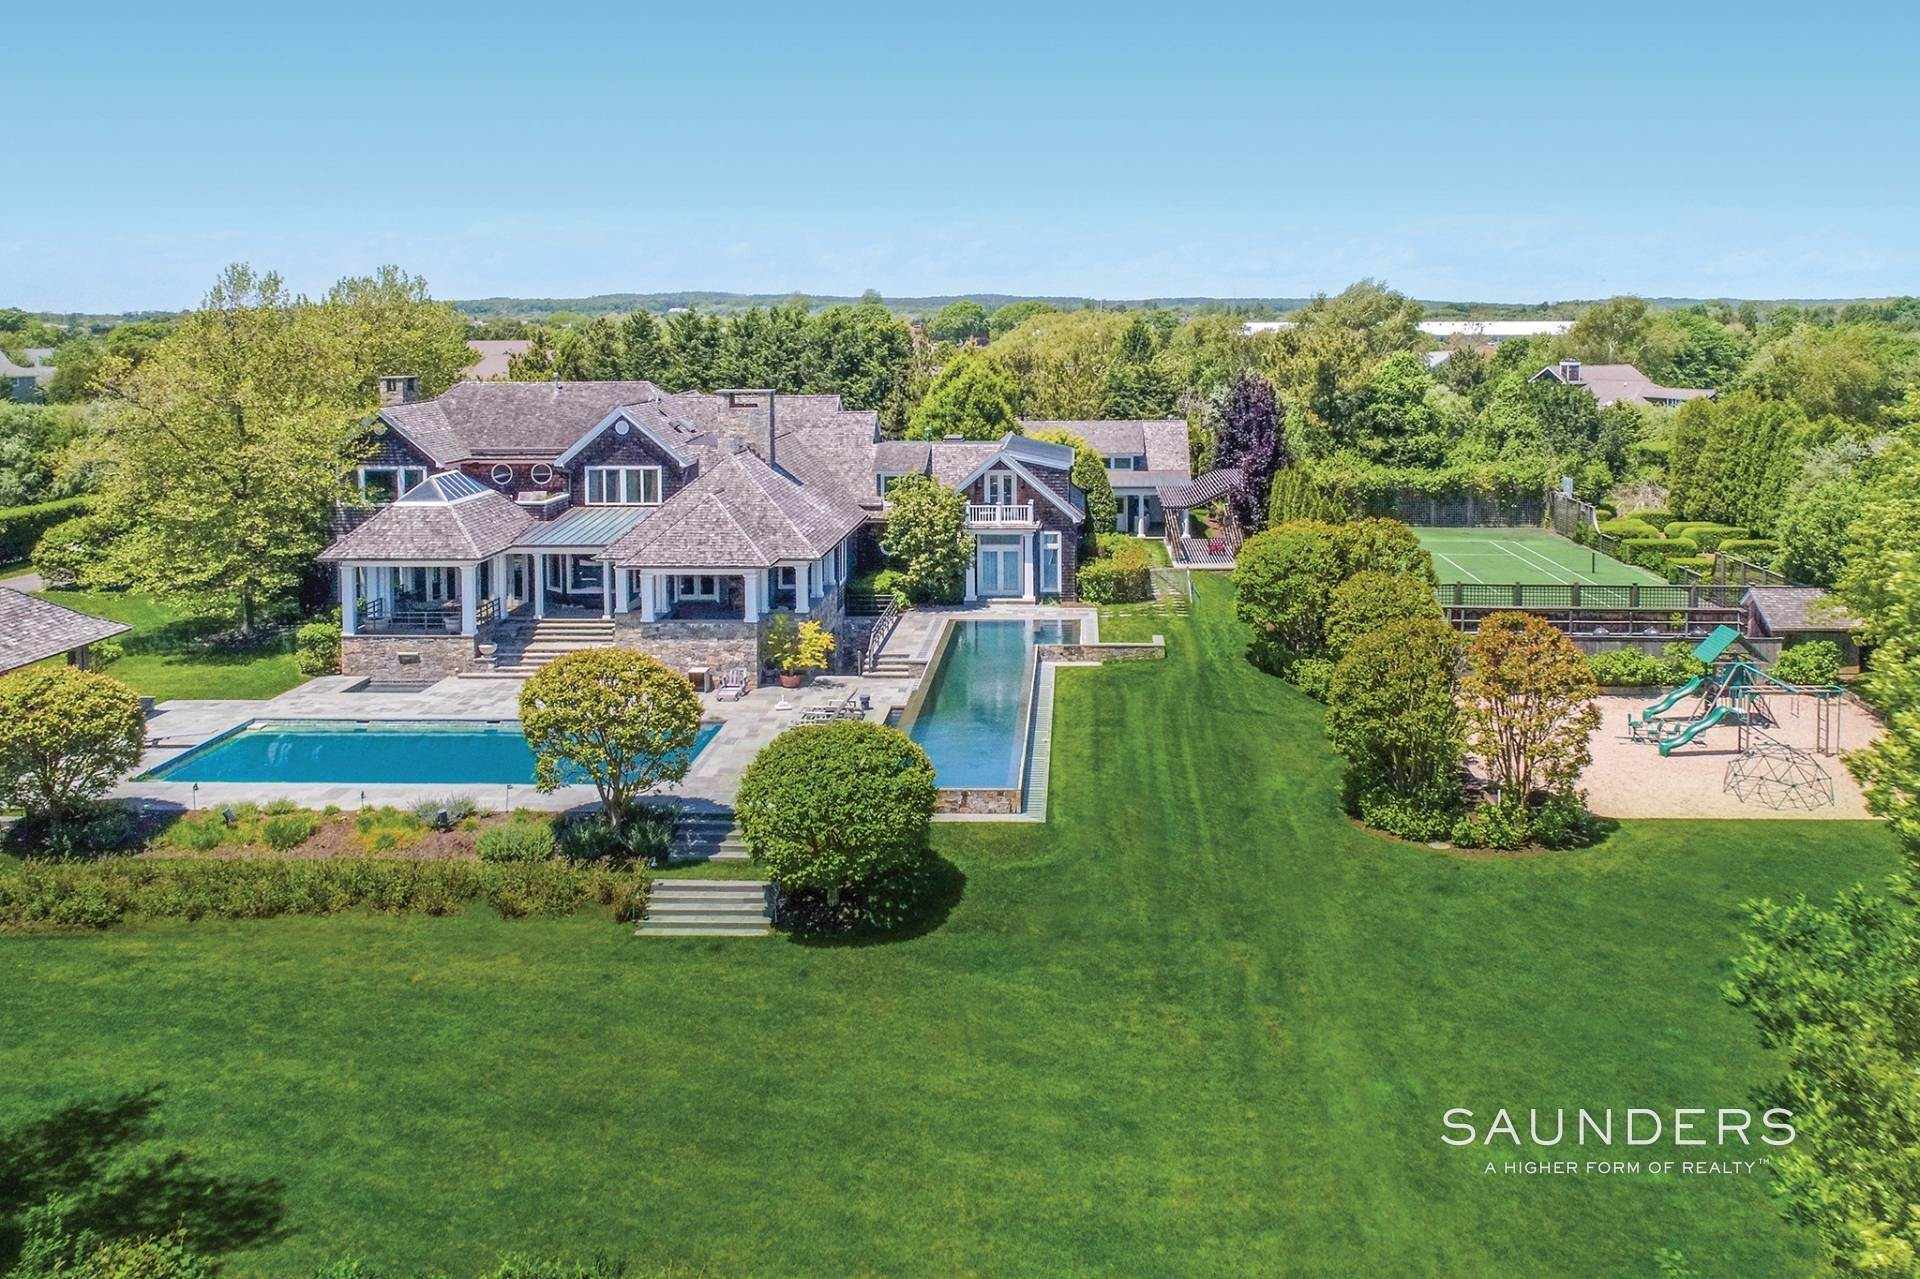 Single Family Homes for Sale at Water Mill South Estate With Resort Amenities 34 Cobb Hill Lane, Water Mill, Southampton Town, NY 11976